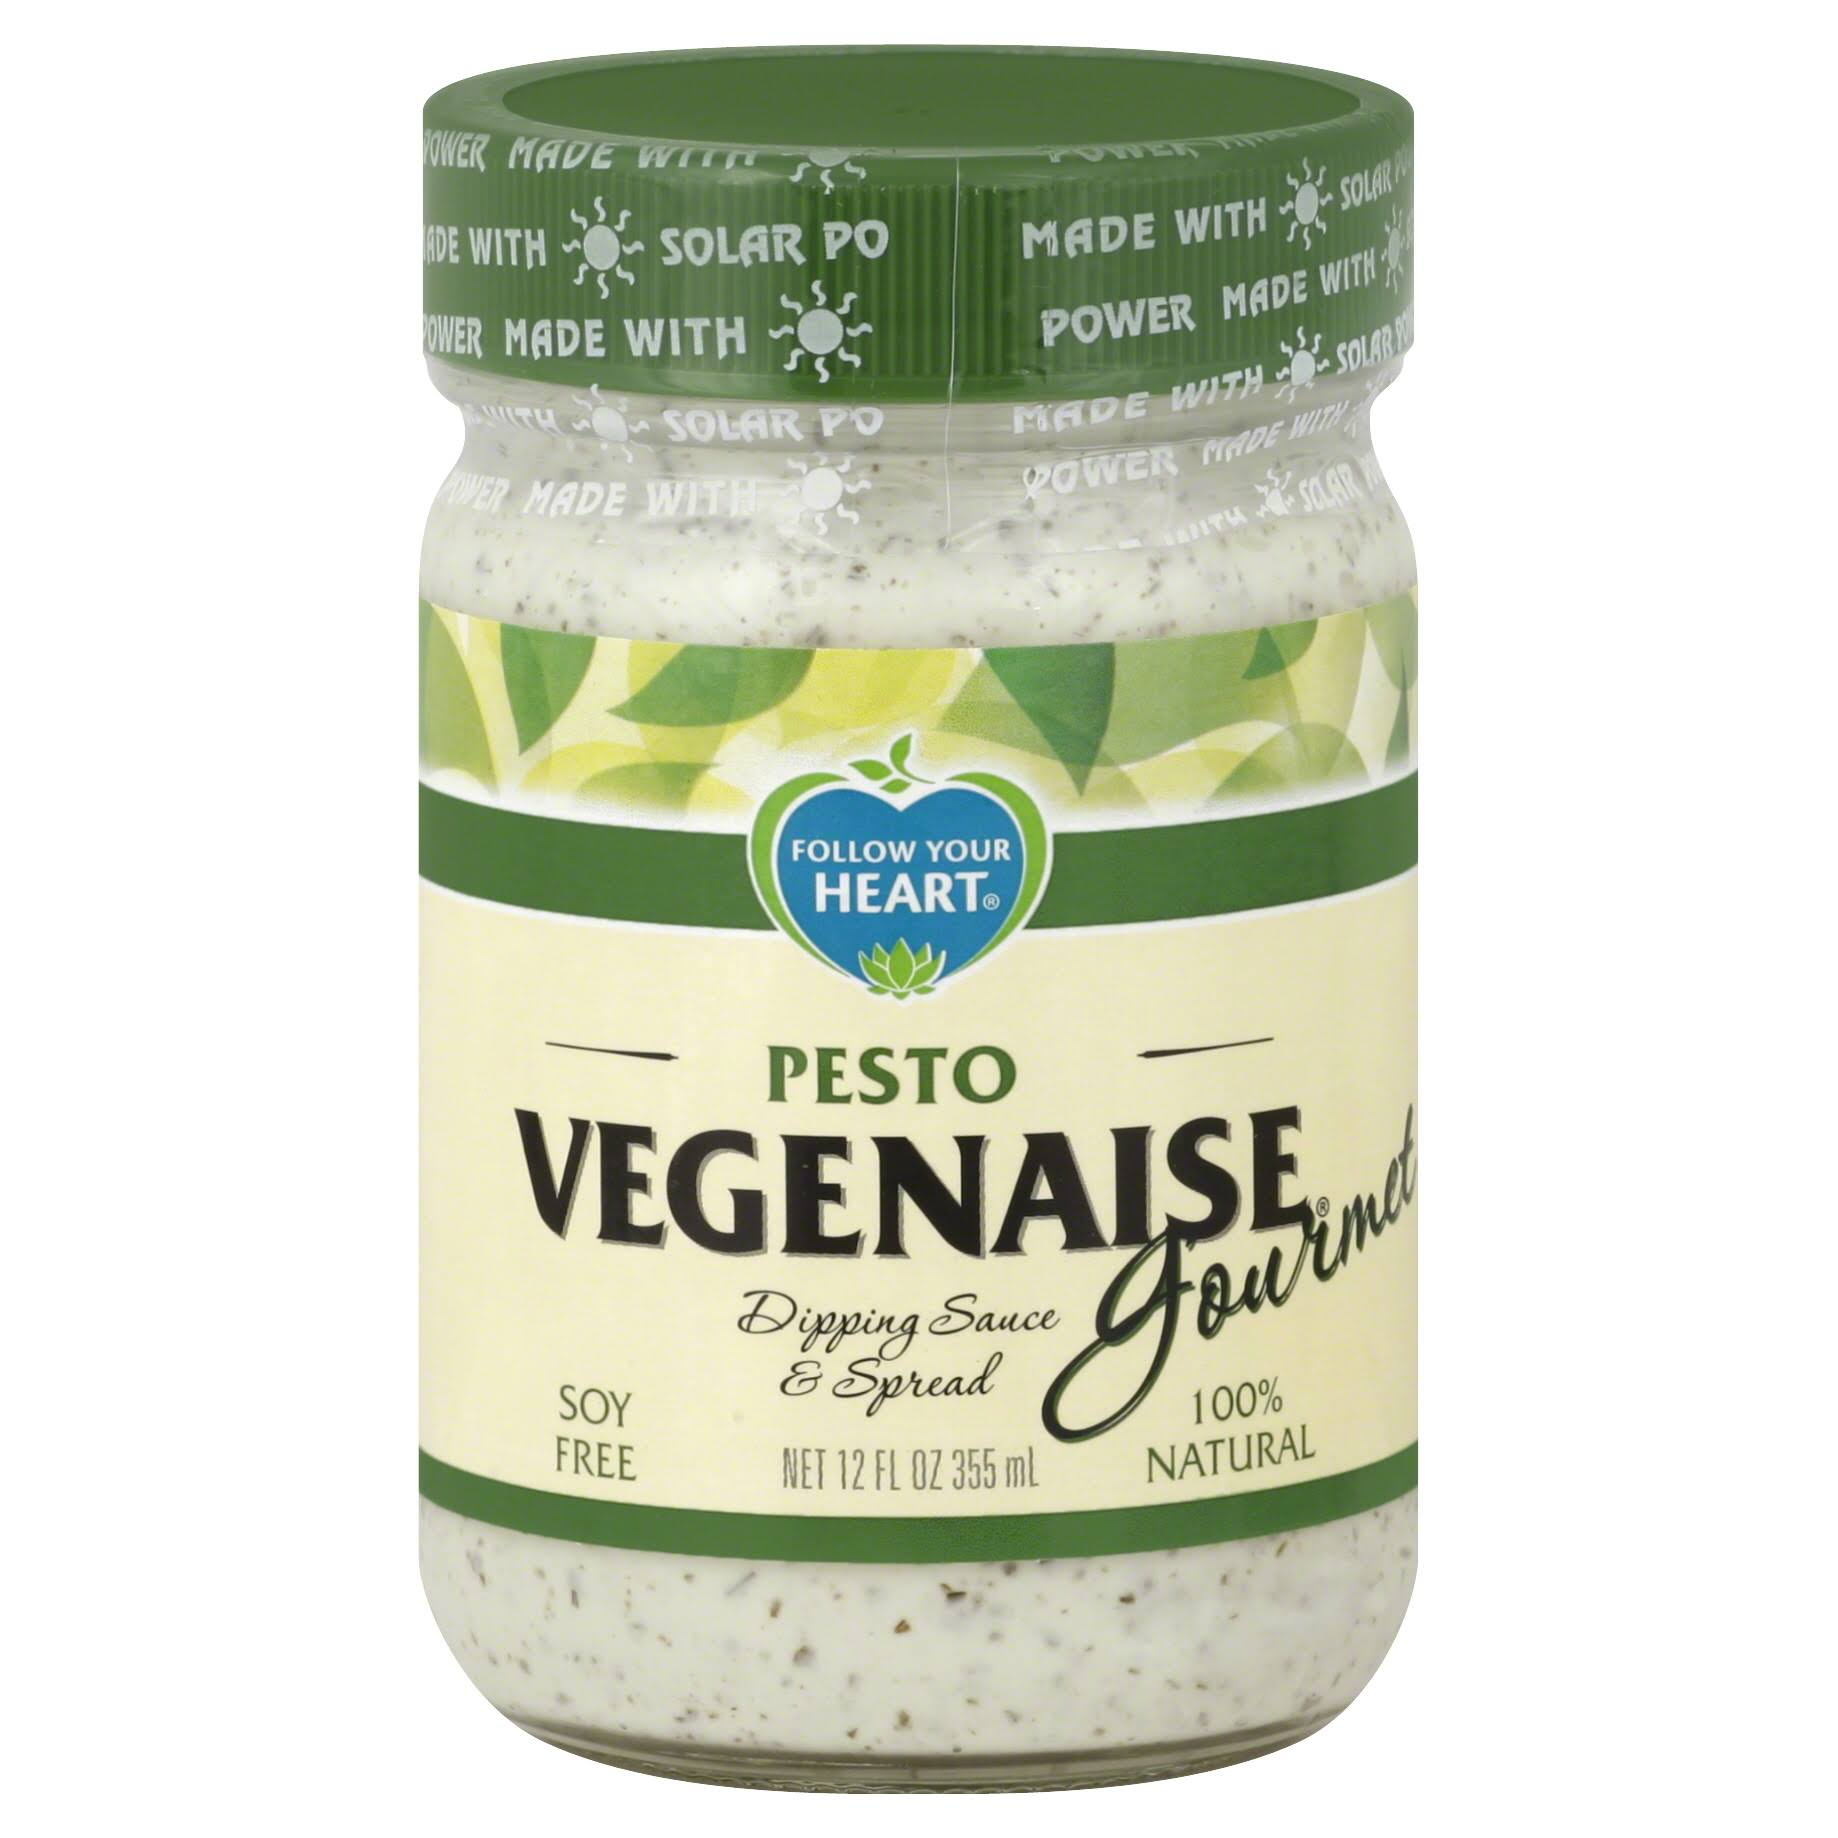 Follow Your Heart Vegenaise Gourmet Dipping Sauce & Spread, Pesto - 12 fl oz